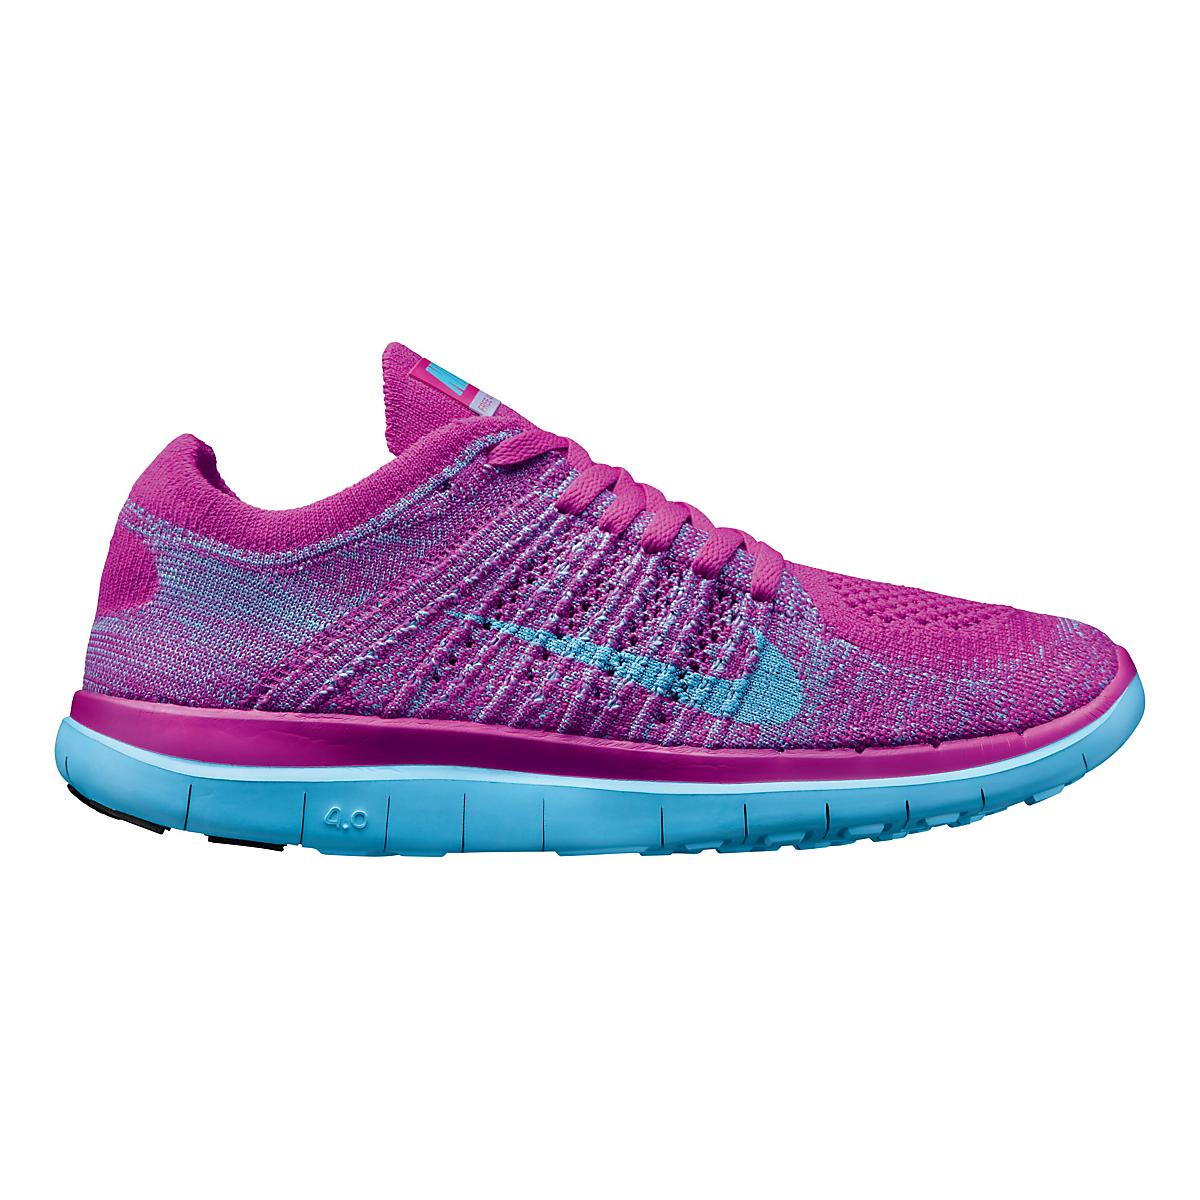 detailed look 35027 19b48 Womens Nike Free 4.0 Flyknit Running Shoe at Road Runner Sports